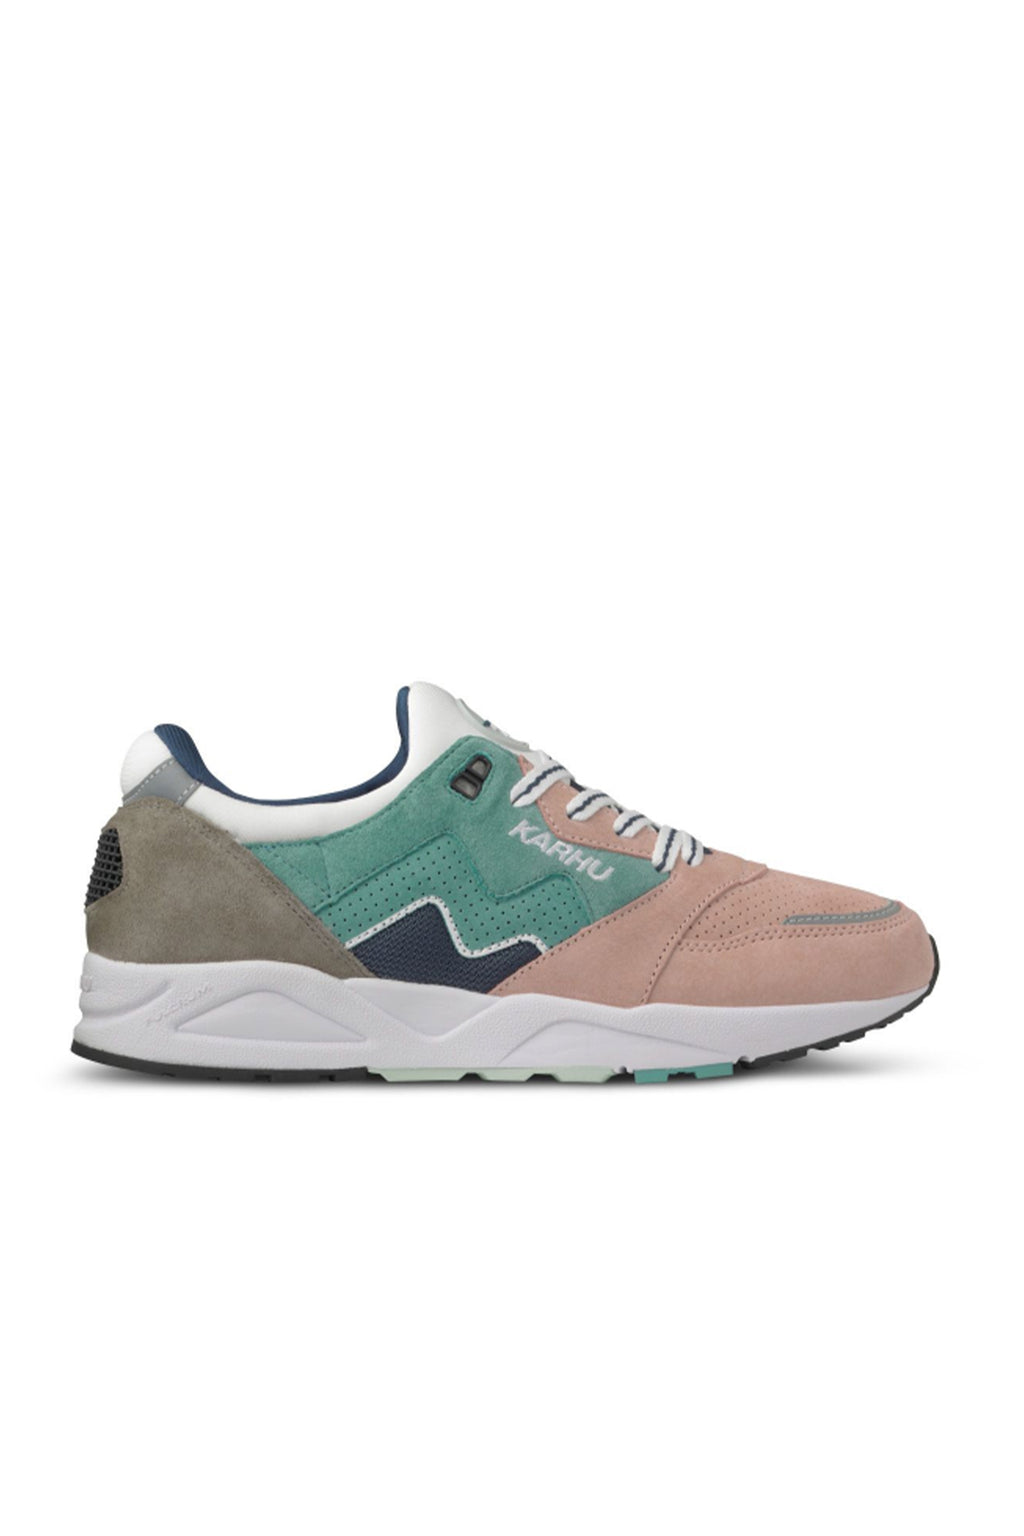 Karhu Aria Oil Blue / Misty Rose Trainers